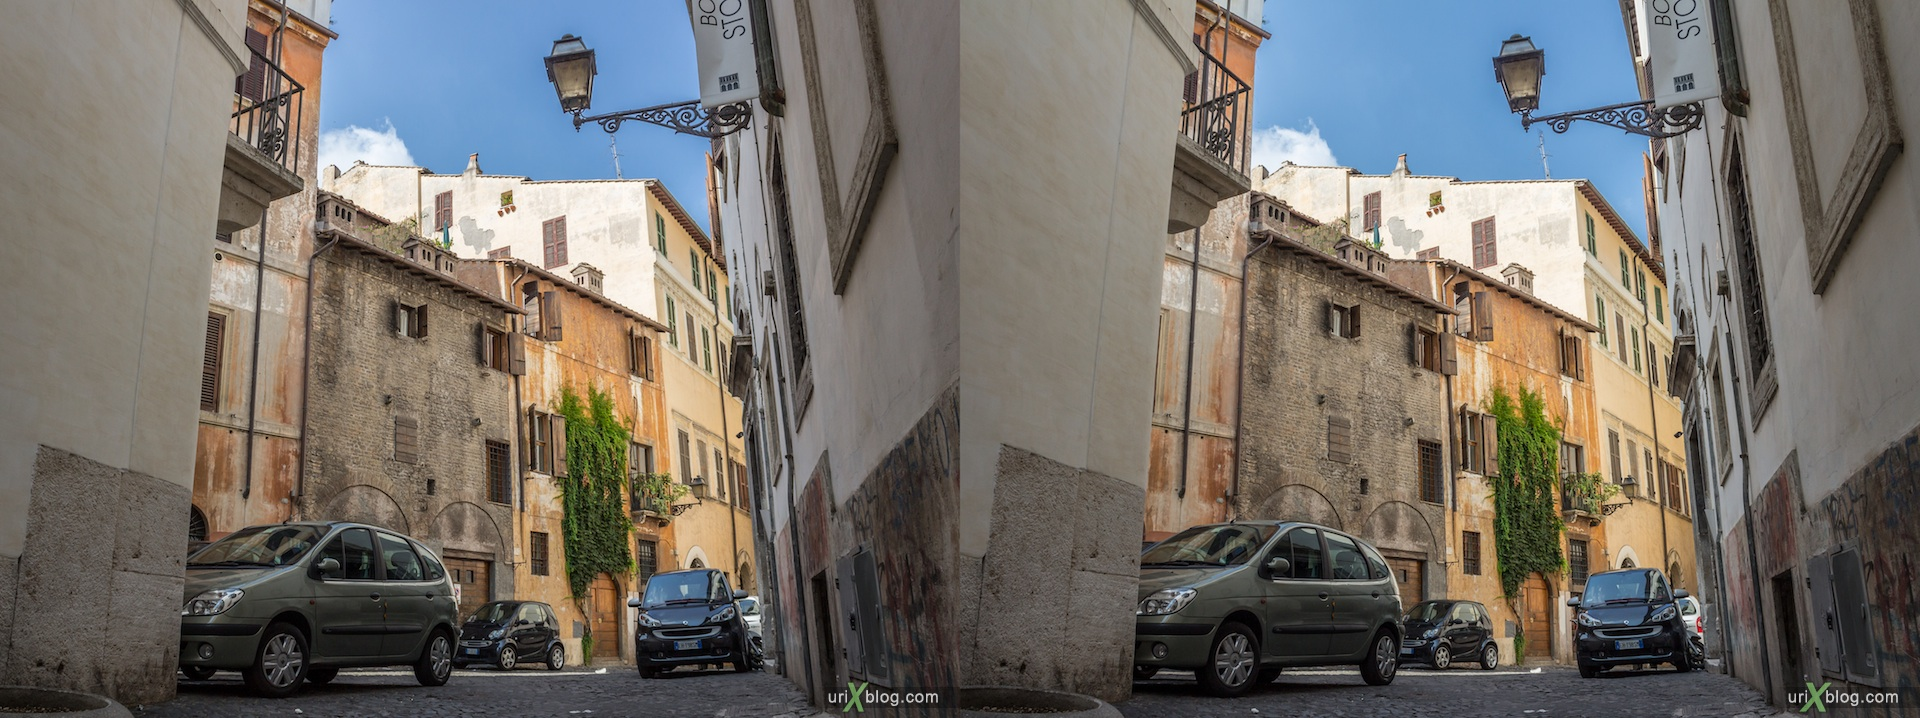 2012, vicolo degli Osti street, alley, 3D, stereo pair, cross-eyed, crossview, cross view stereo pair